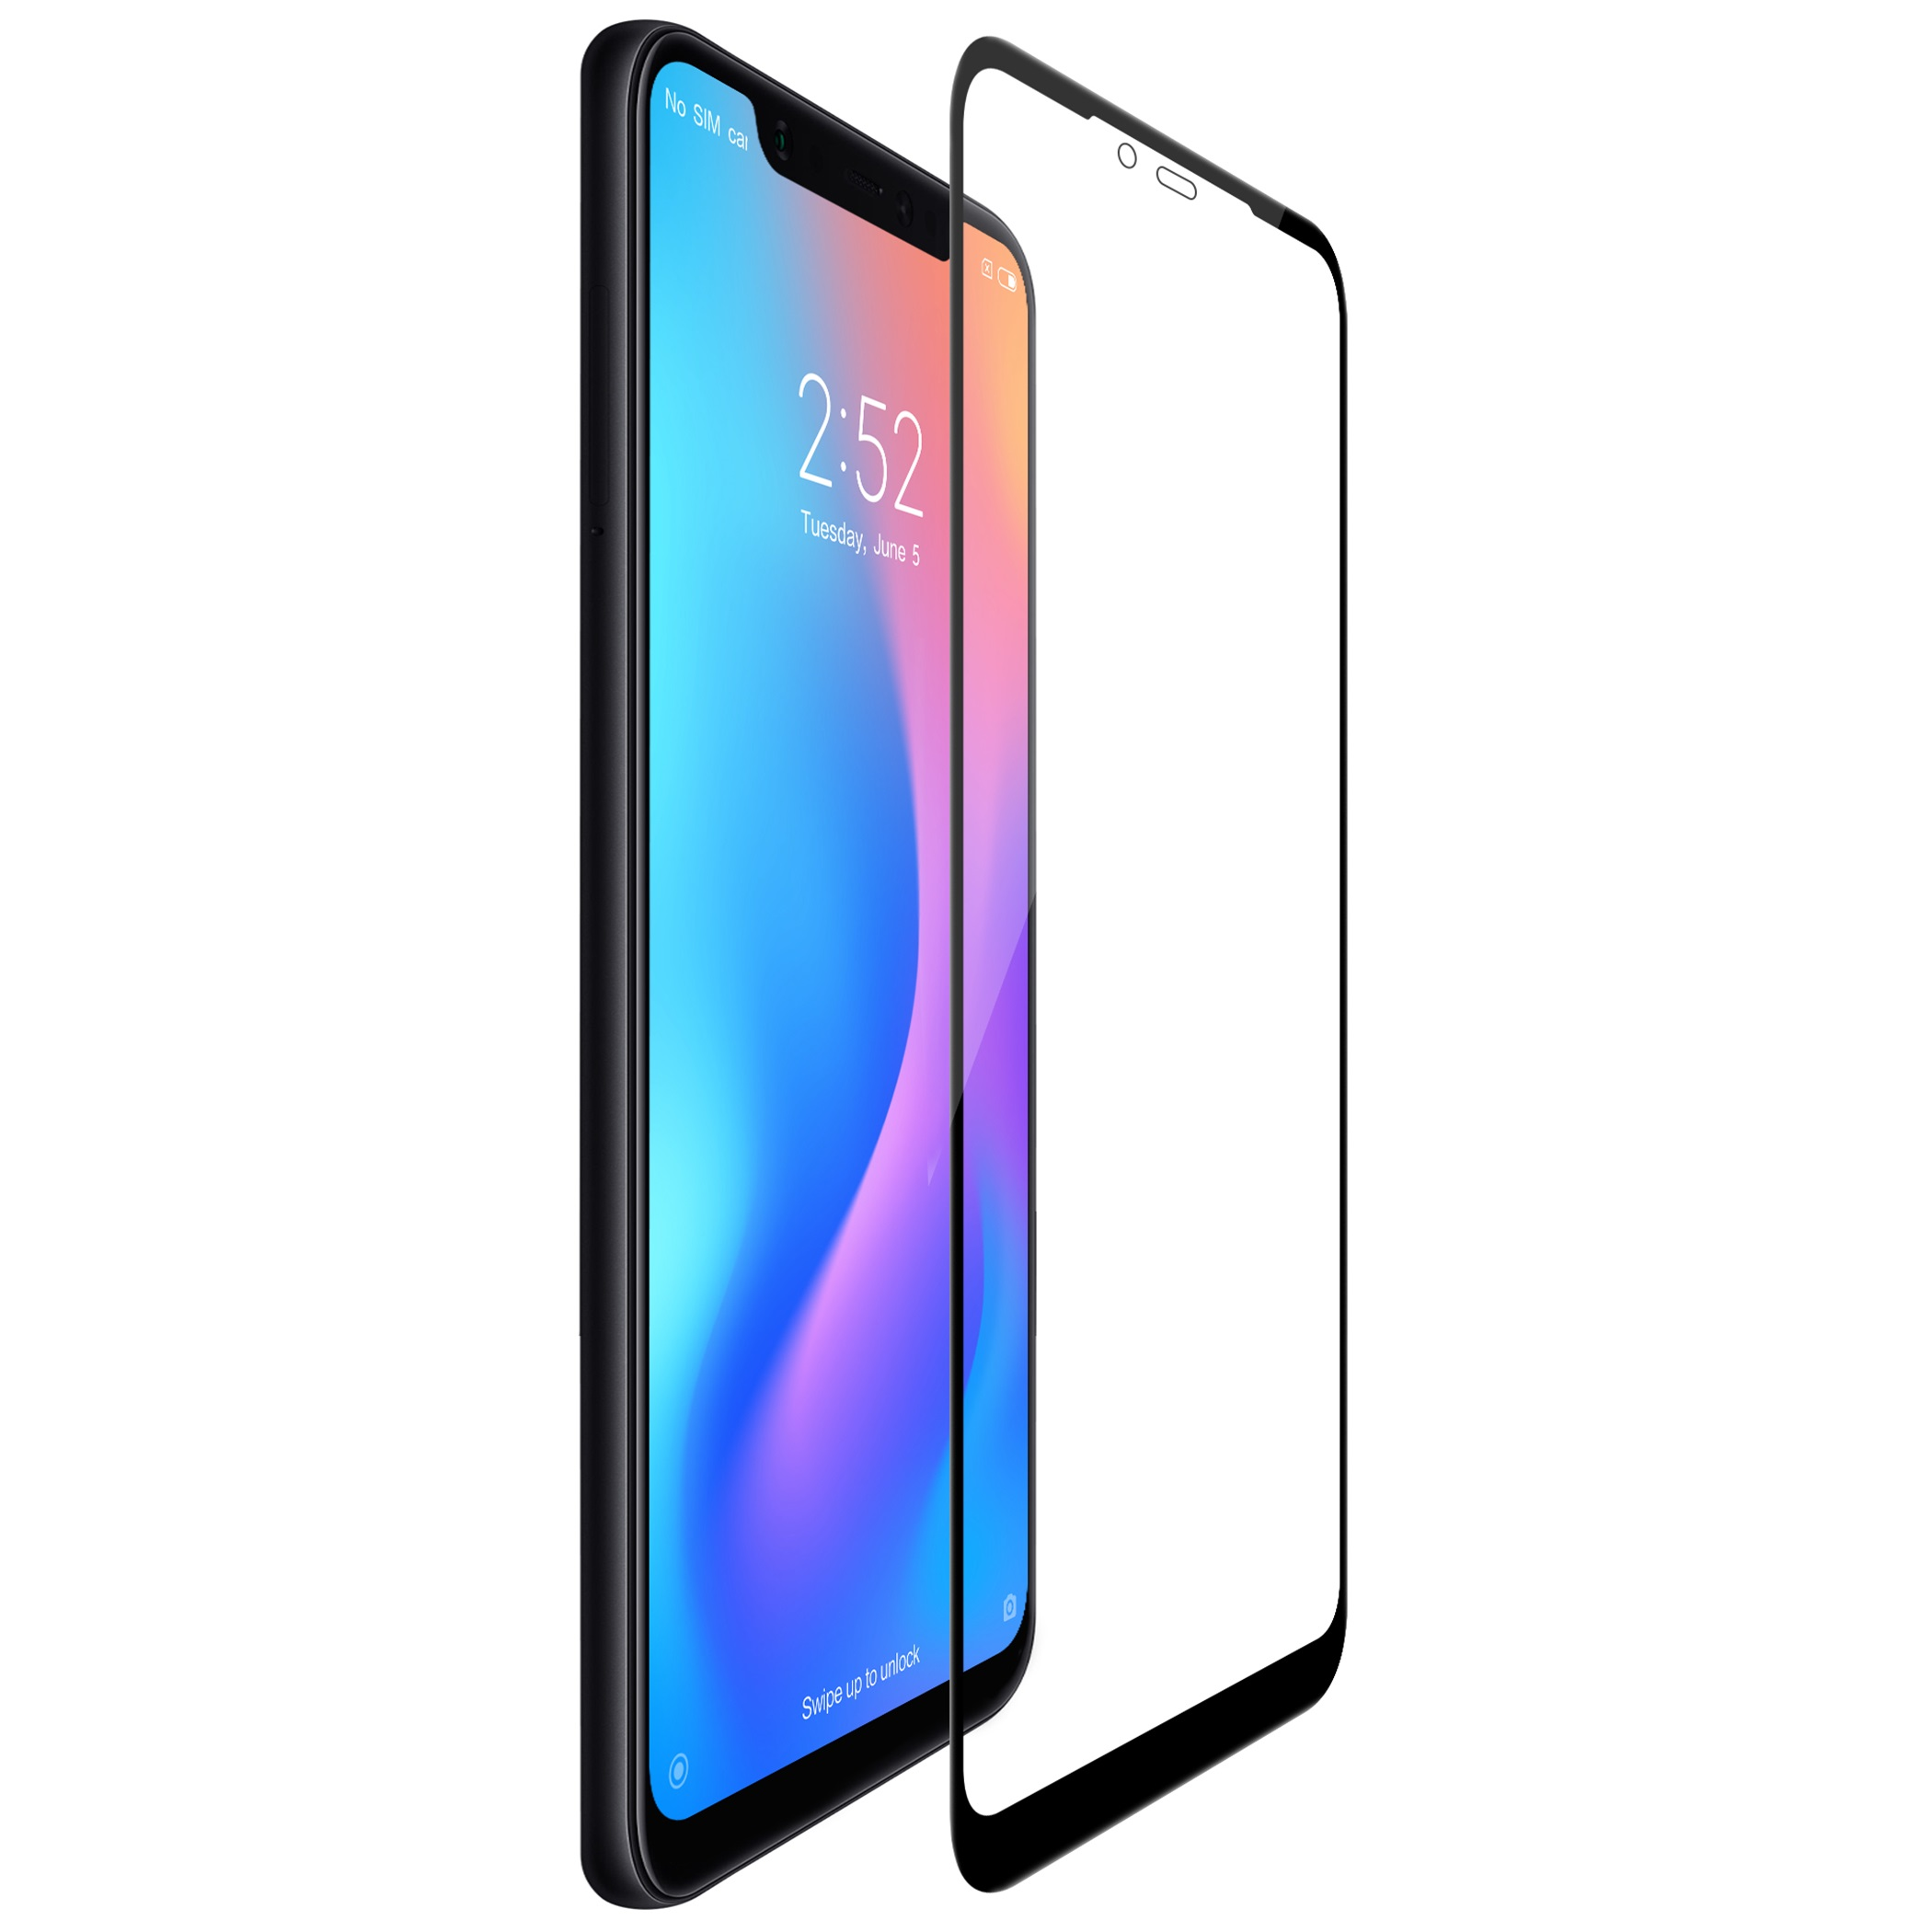 Aliexpress Buy Xiaomi mi 8 glass screen protector Nillkin 3D CP Max Tempered Glass For Xiaomi Mi8 full covered Screen Protective film from Reliable